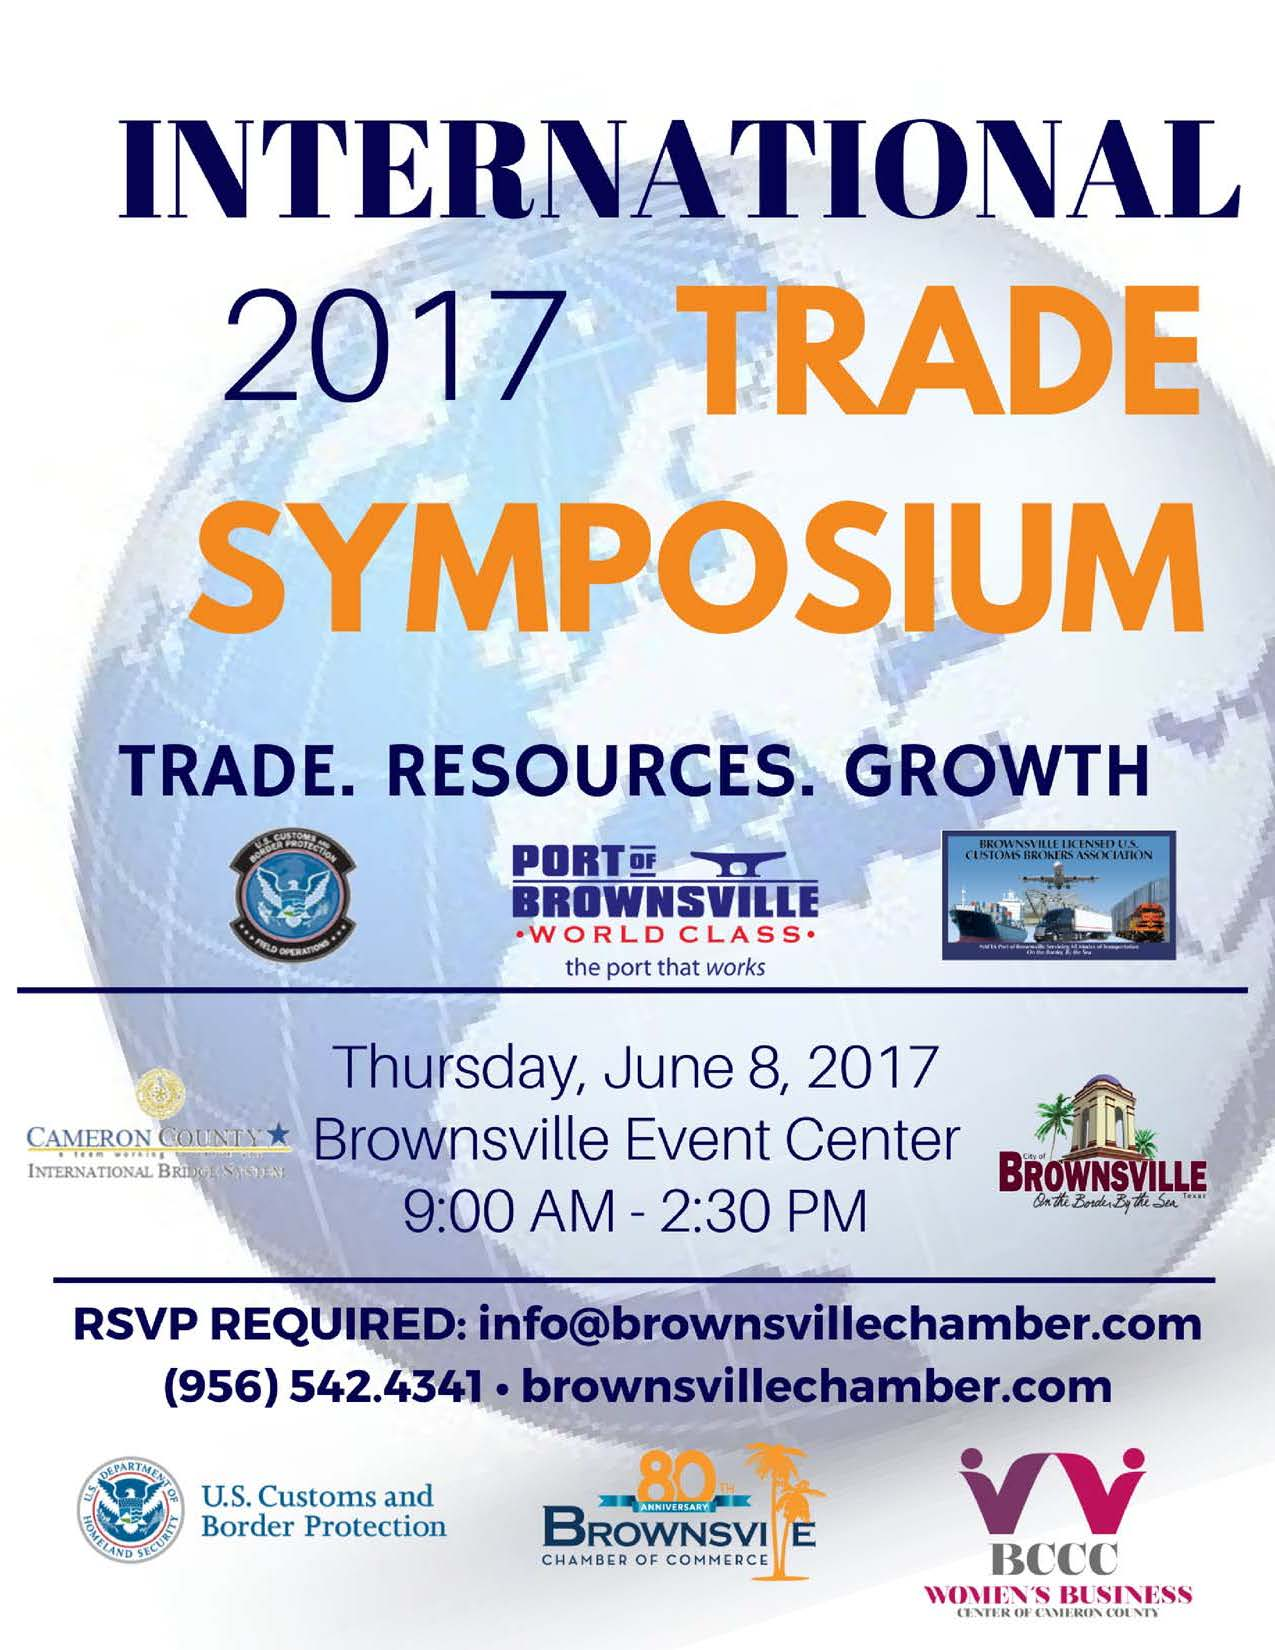 2017 International Trade Symposium Flyer